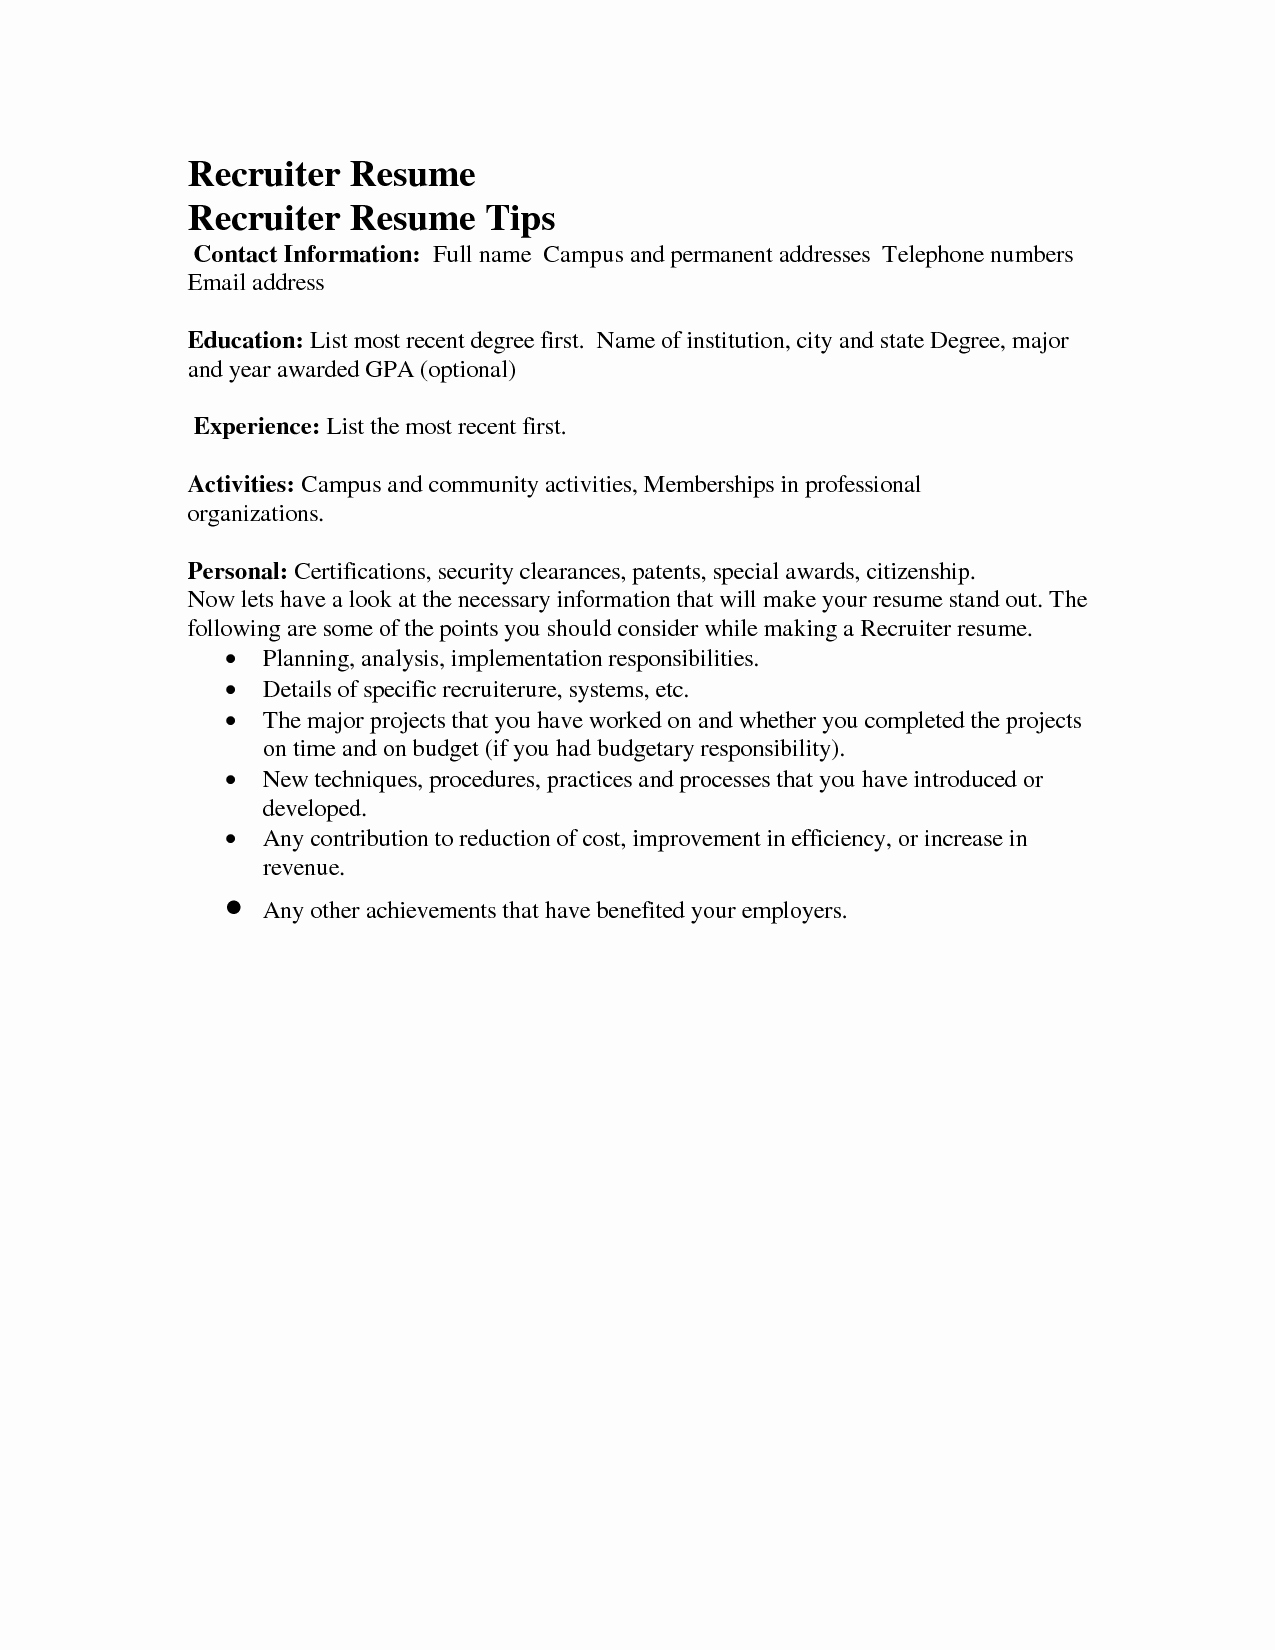 Sample Email to Send Resume to Recruiter Cover Letter